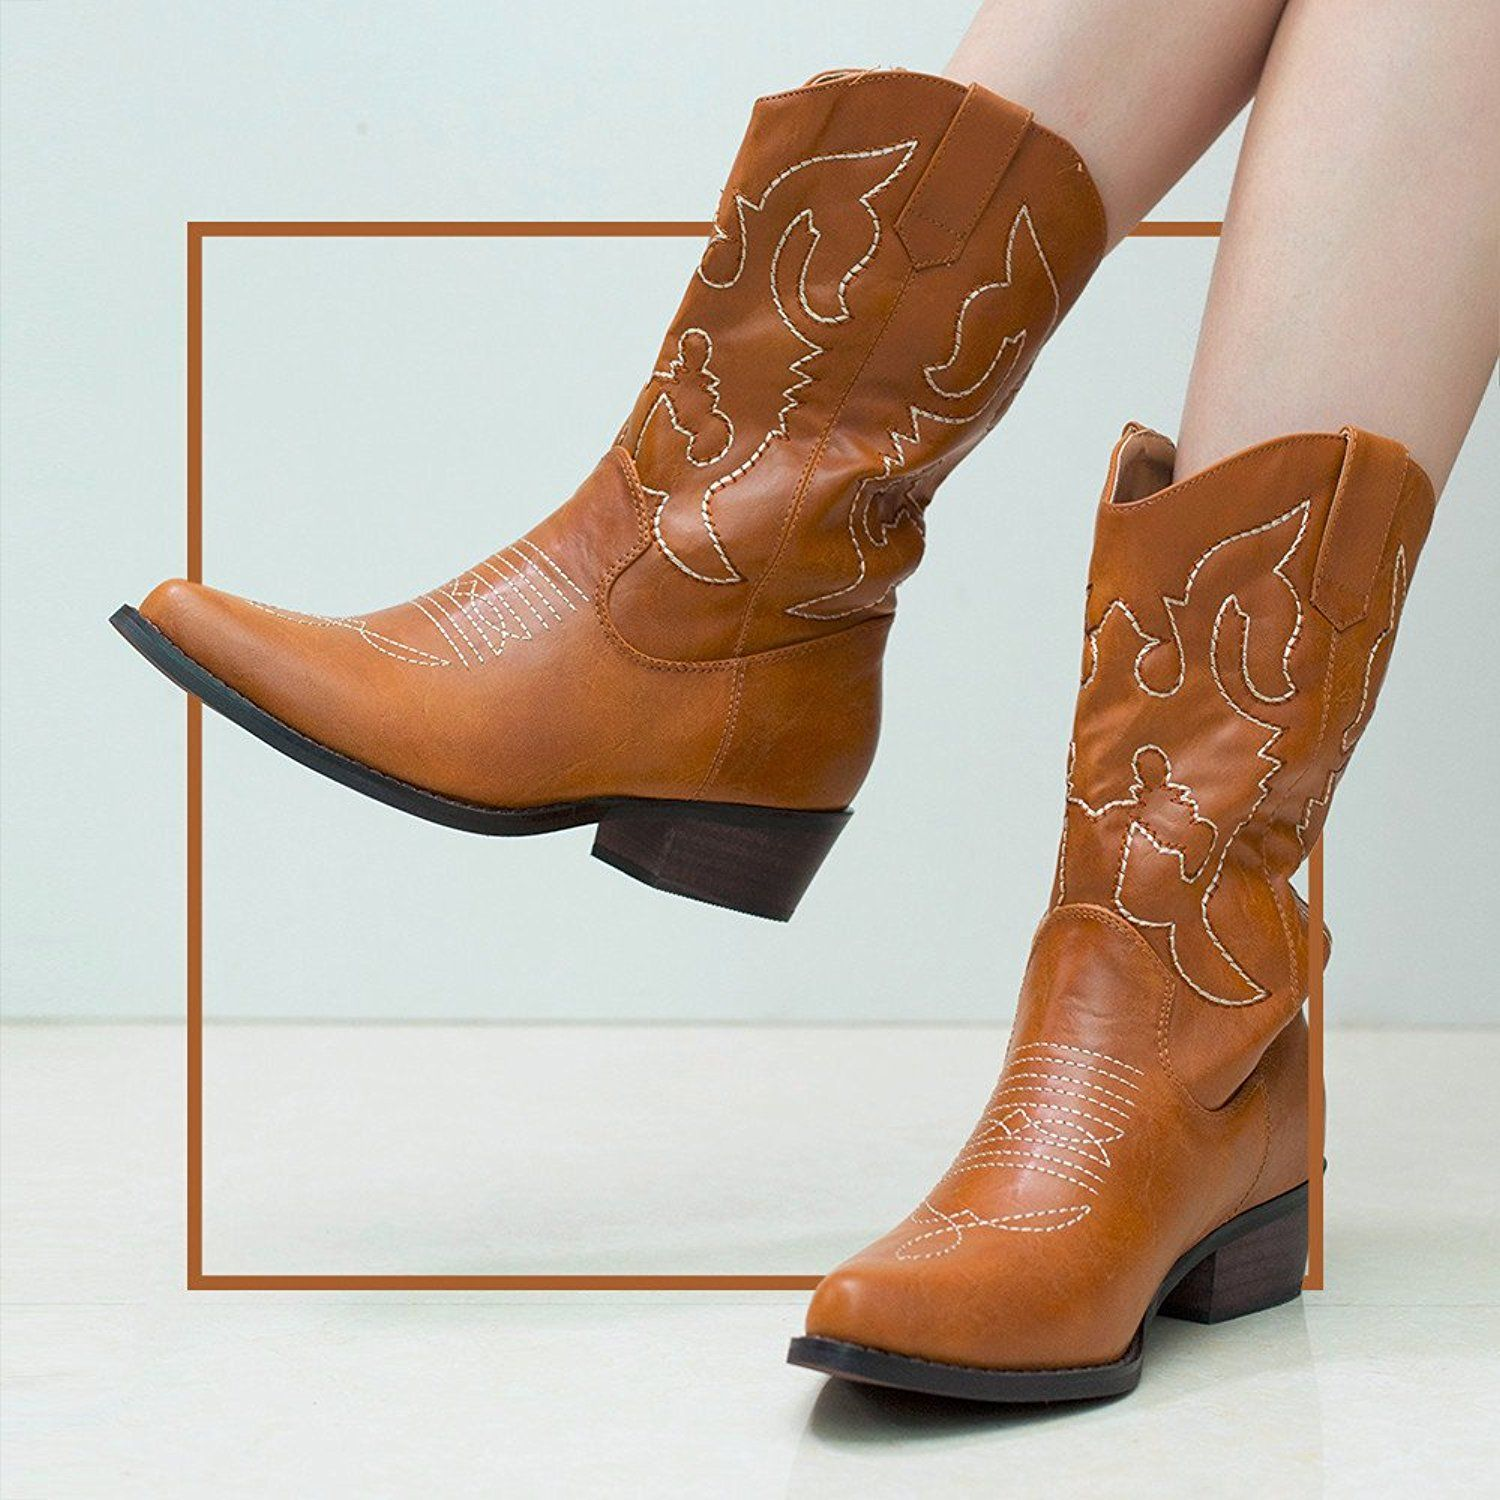 a533d7454 SheSole Women s Cowboy Cowgirl Western Boots Tan Size 6  Amazon.co.uk  Shoes    Bags